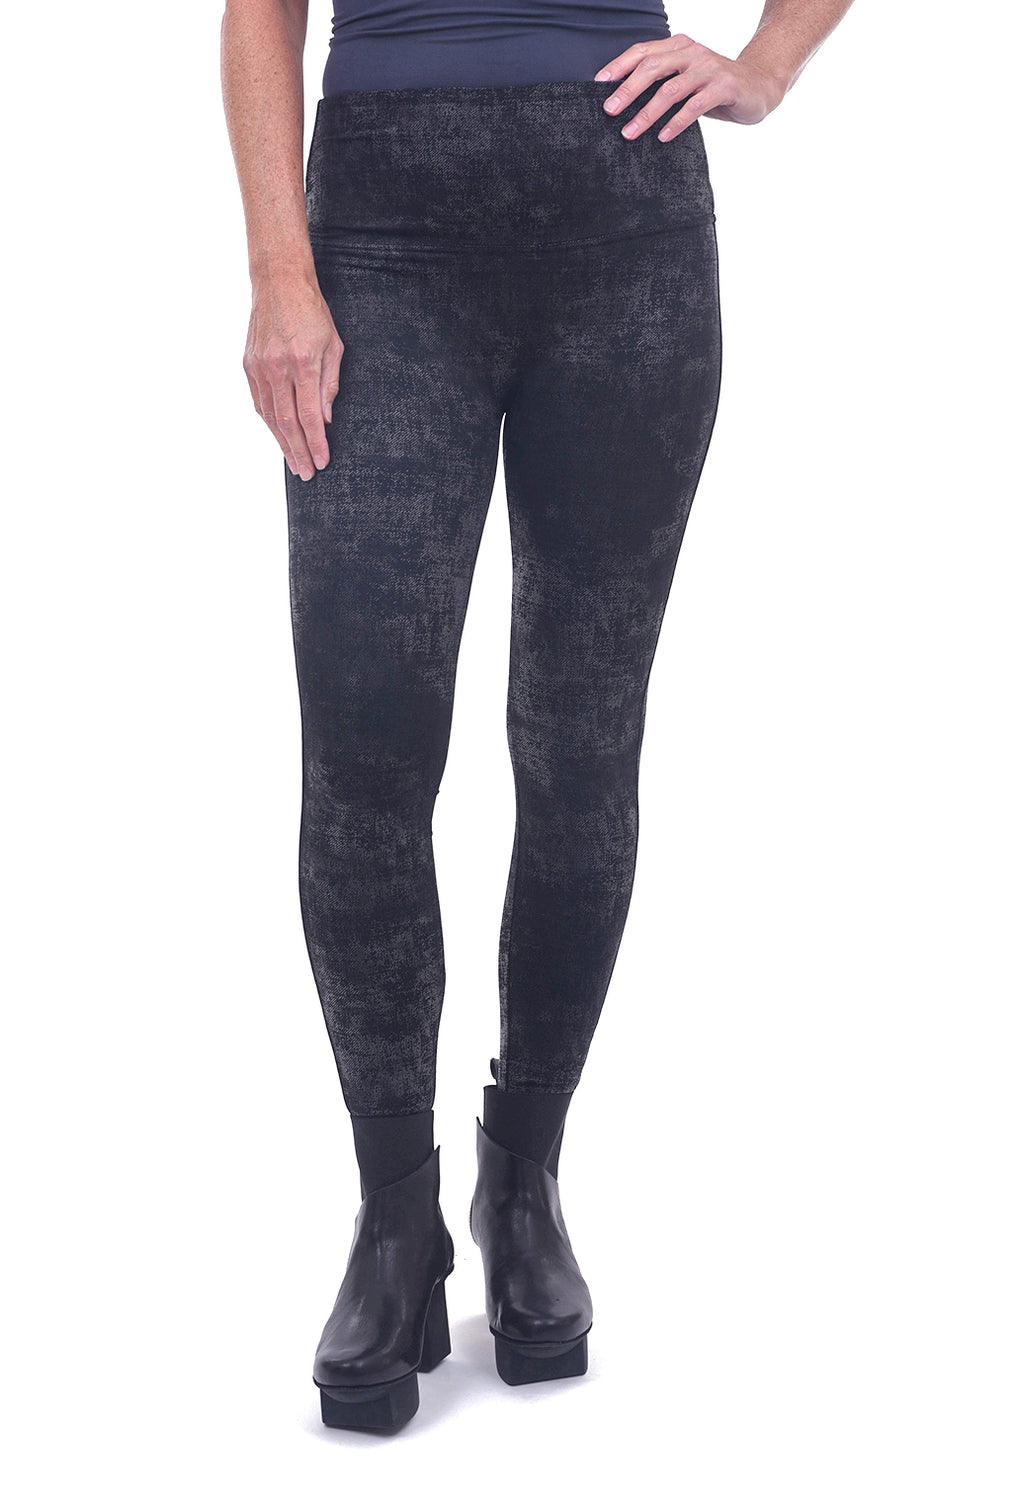 M. Rena Faux Leather Leggings, Black Cement